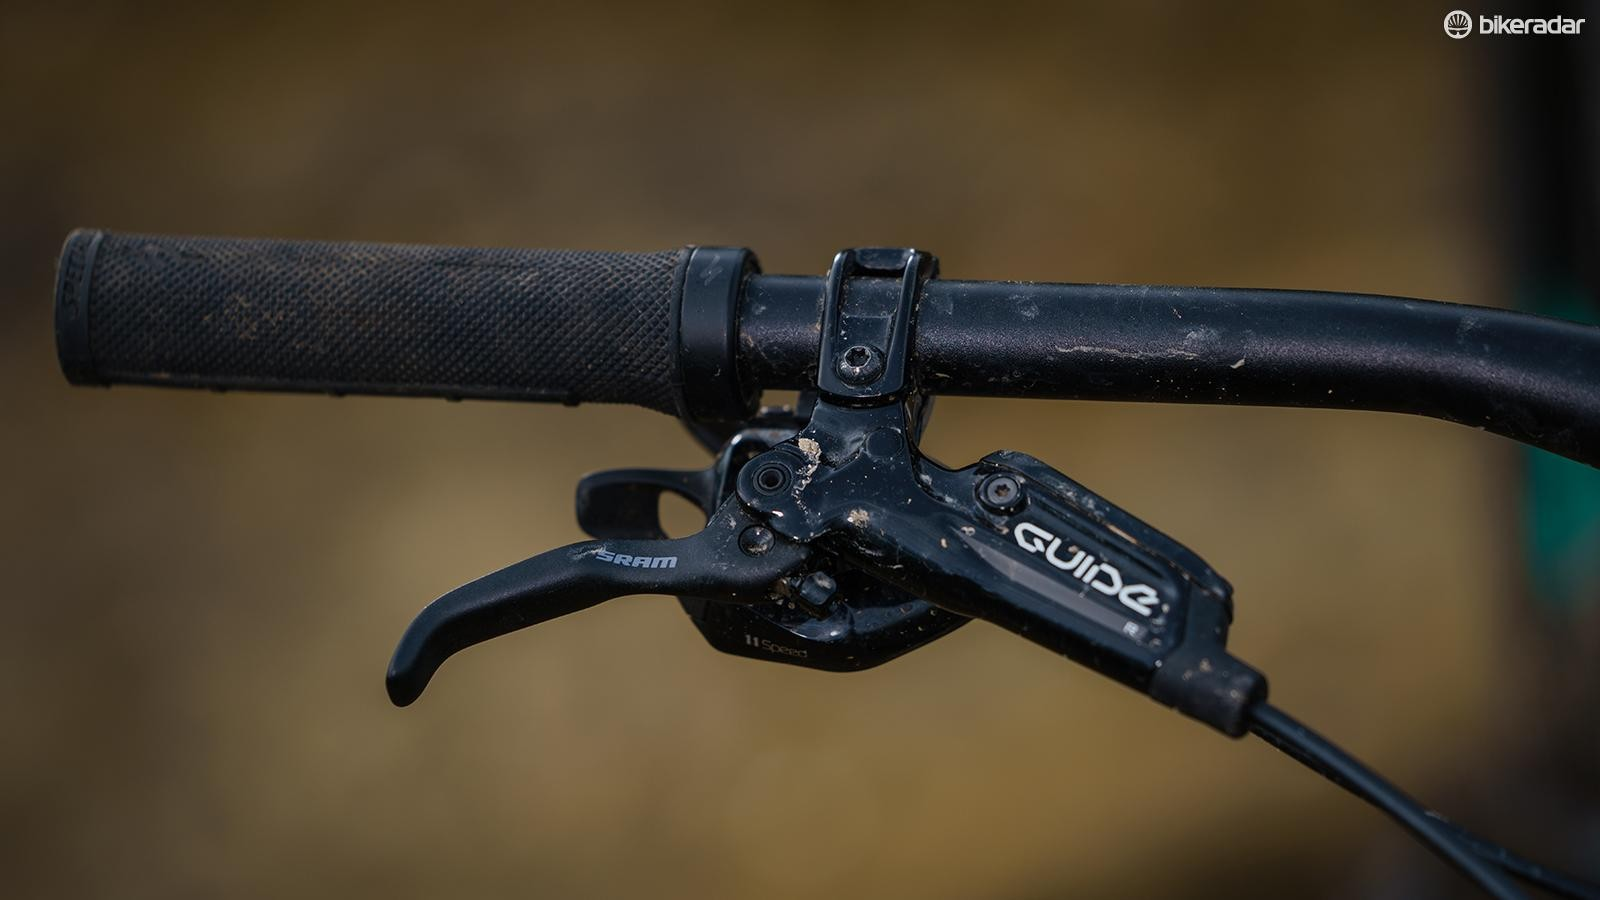 SRAM Guide R brakes are a good quality set for a bike with an aggressive trail purpose